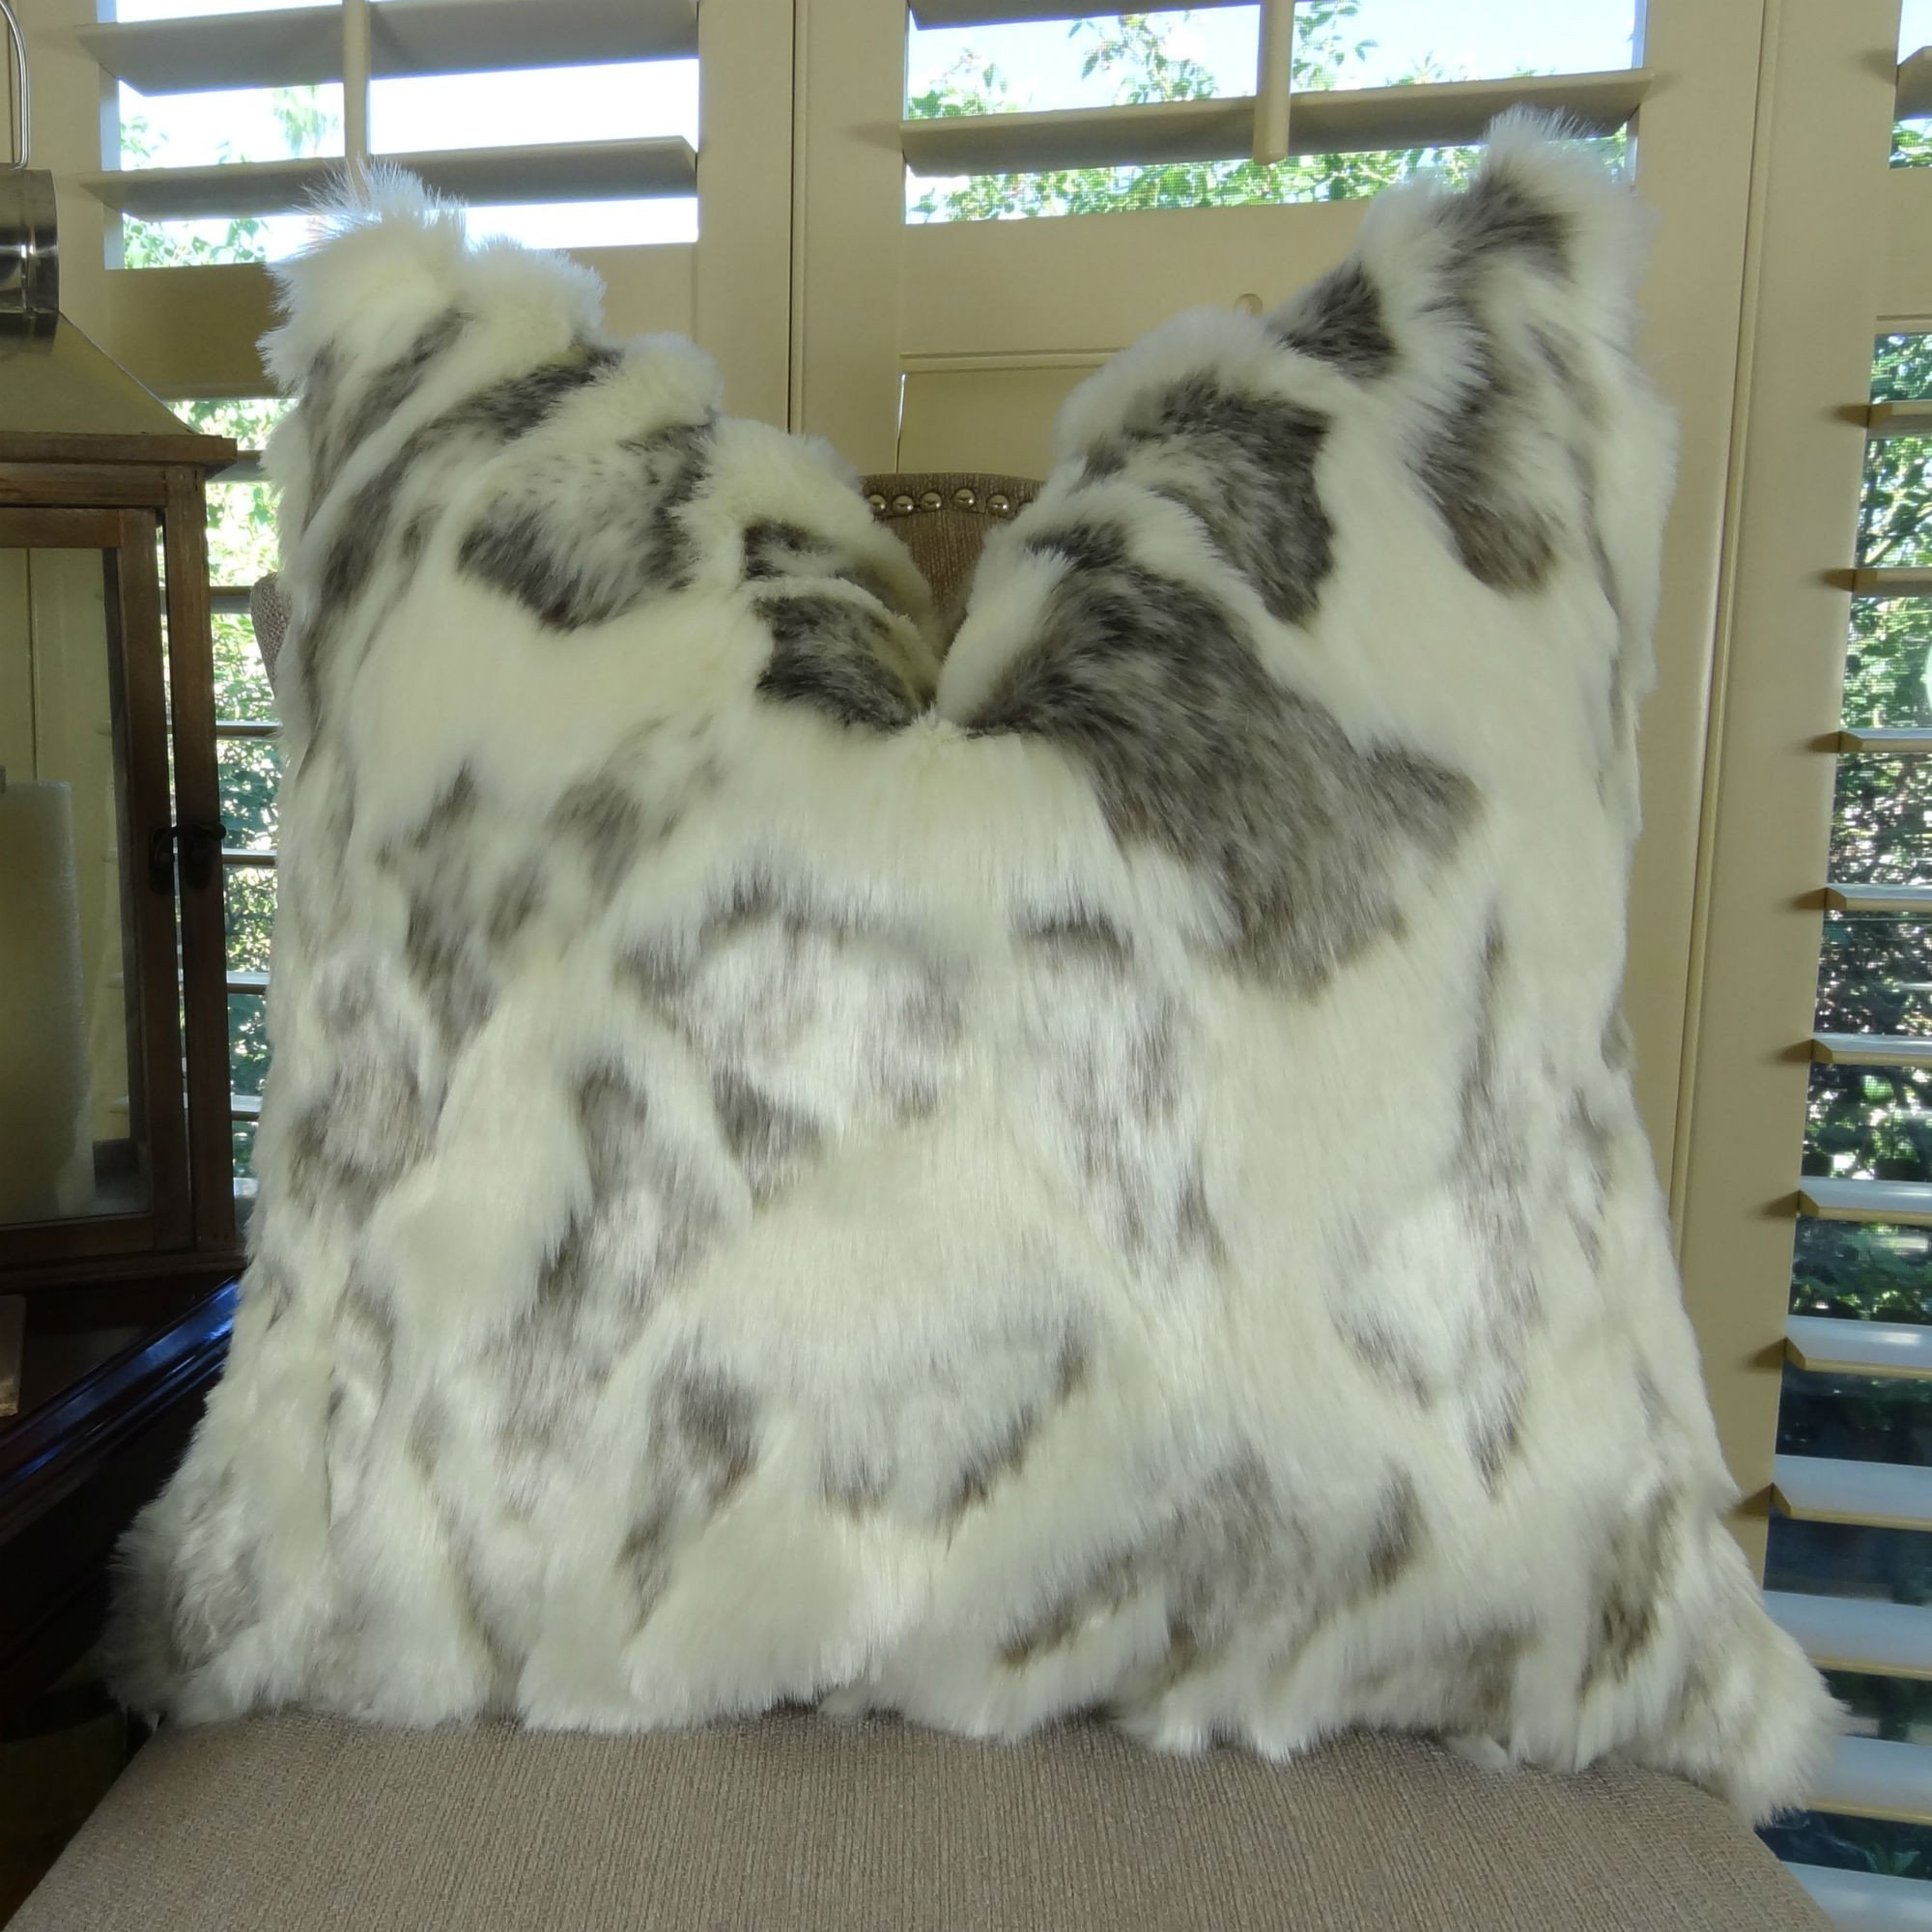 Thomas Collection luxurious throw pillows, handmade throw pillows, Ivory Gray Rabbit High Low Pile Luxury Faux Fur Throw Pillow, COVER ONLY, NO INSERT, Handmade in USA, 17428